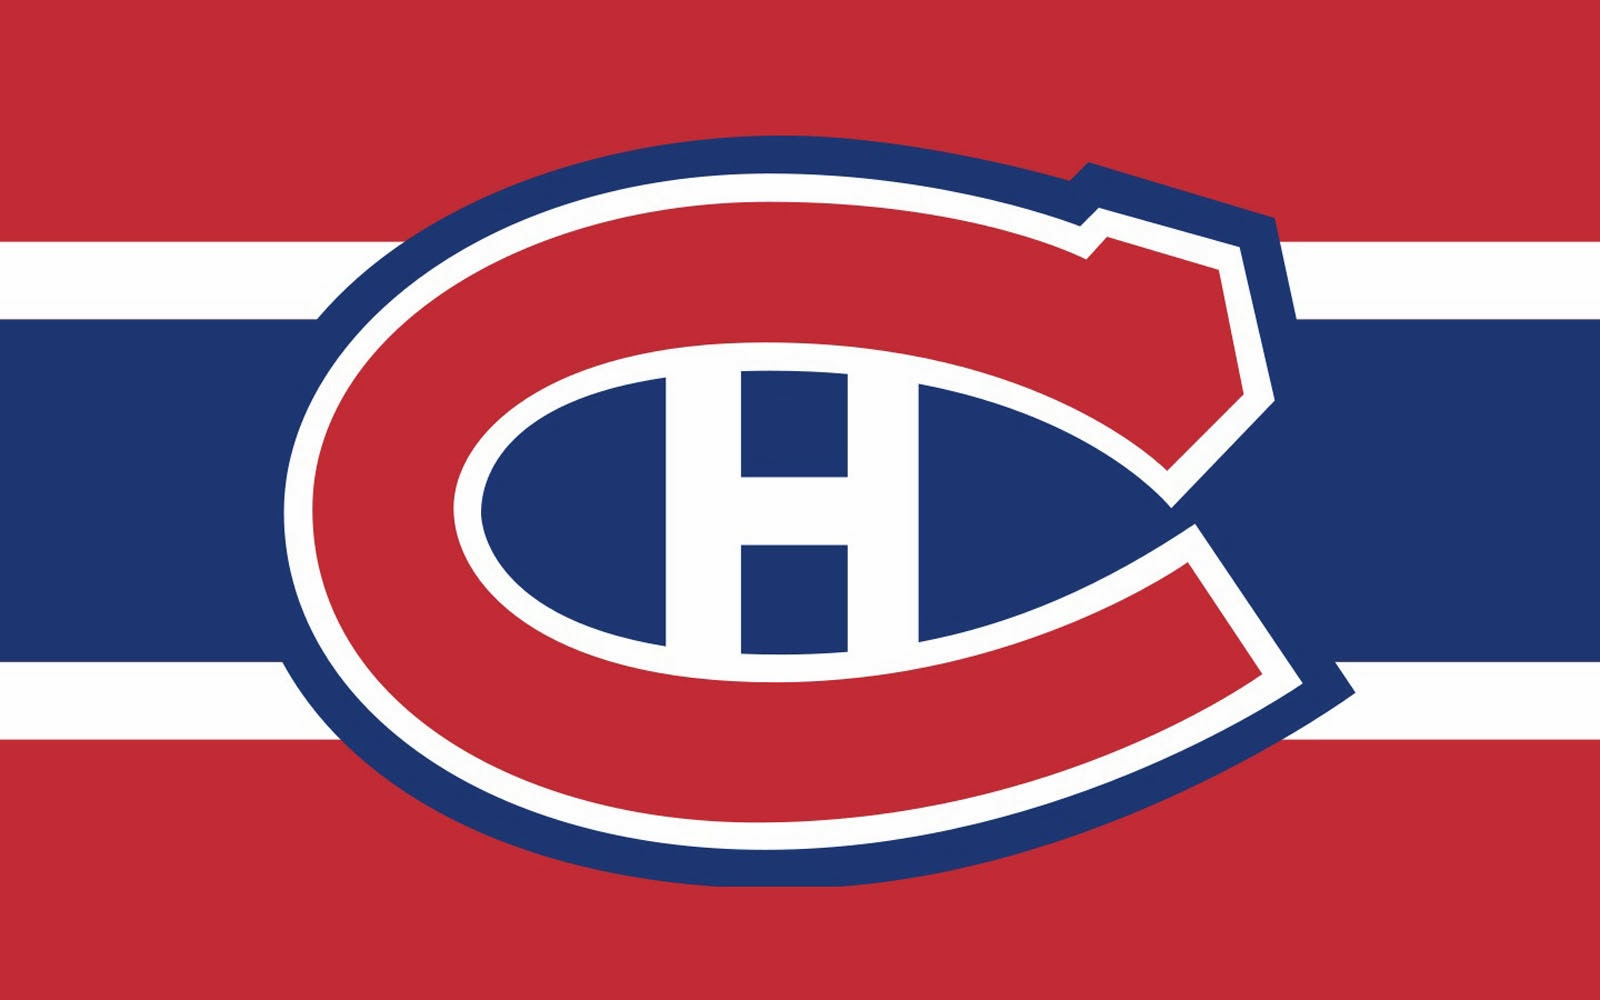 Clipart of the Montreal Canadiens Logo free image.